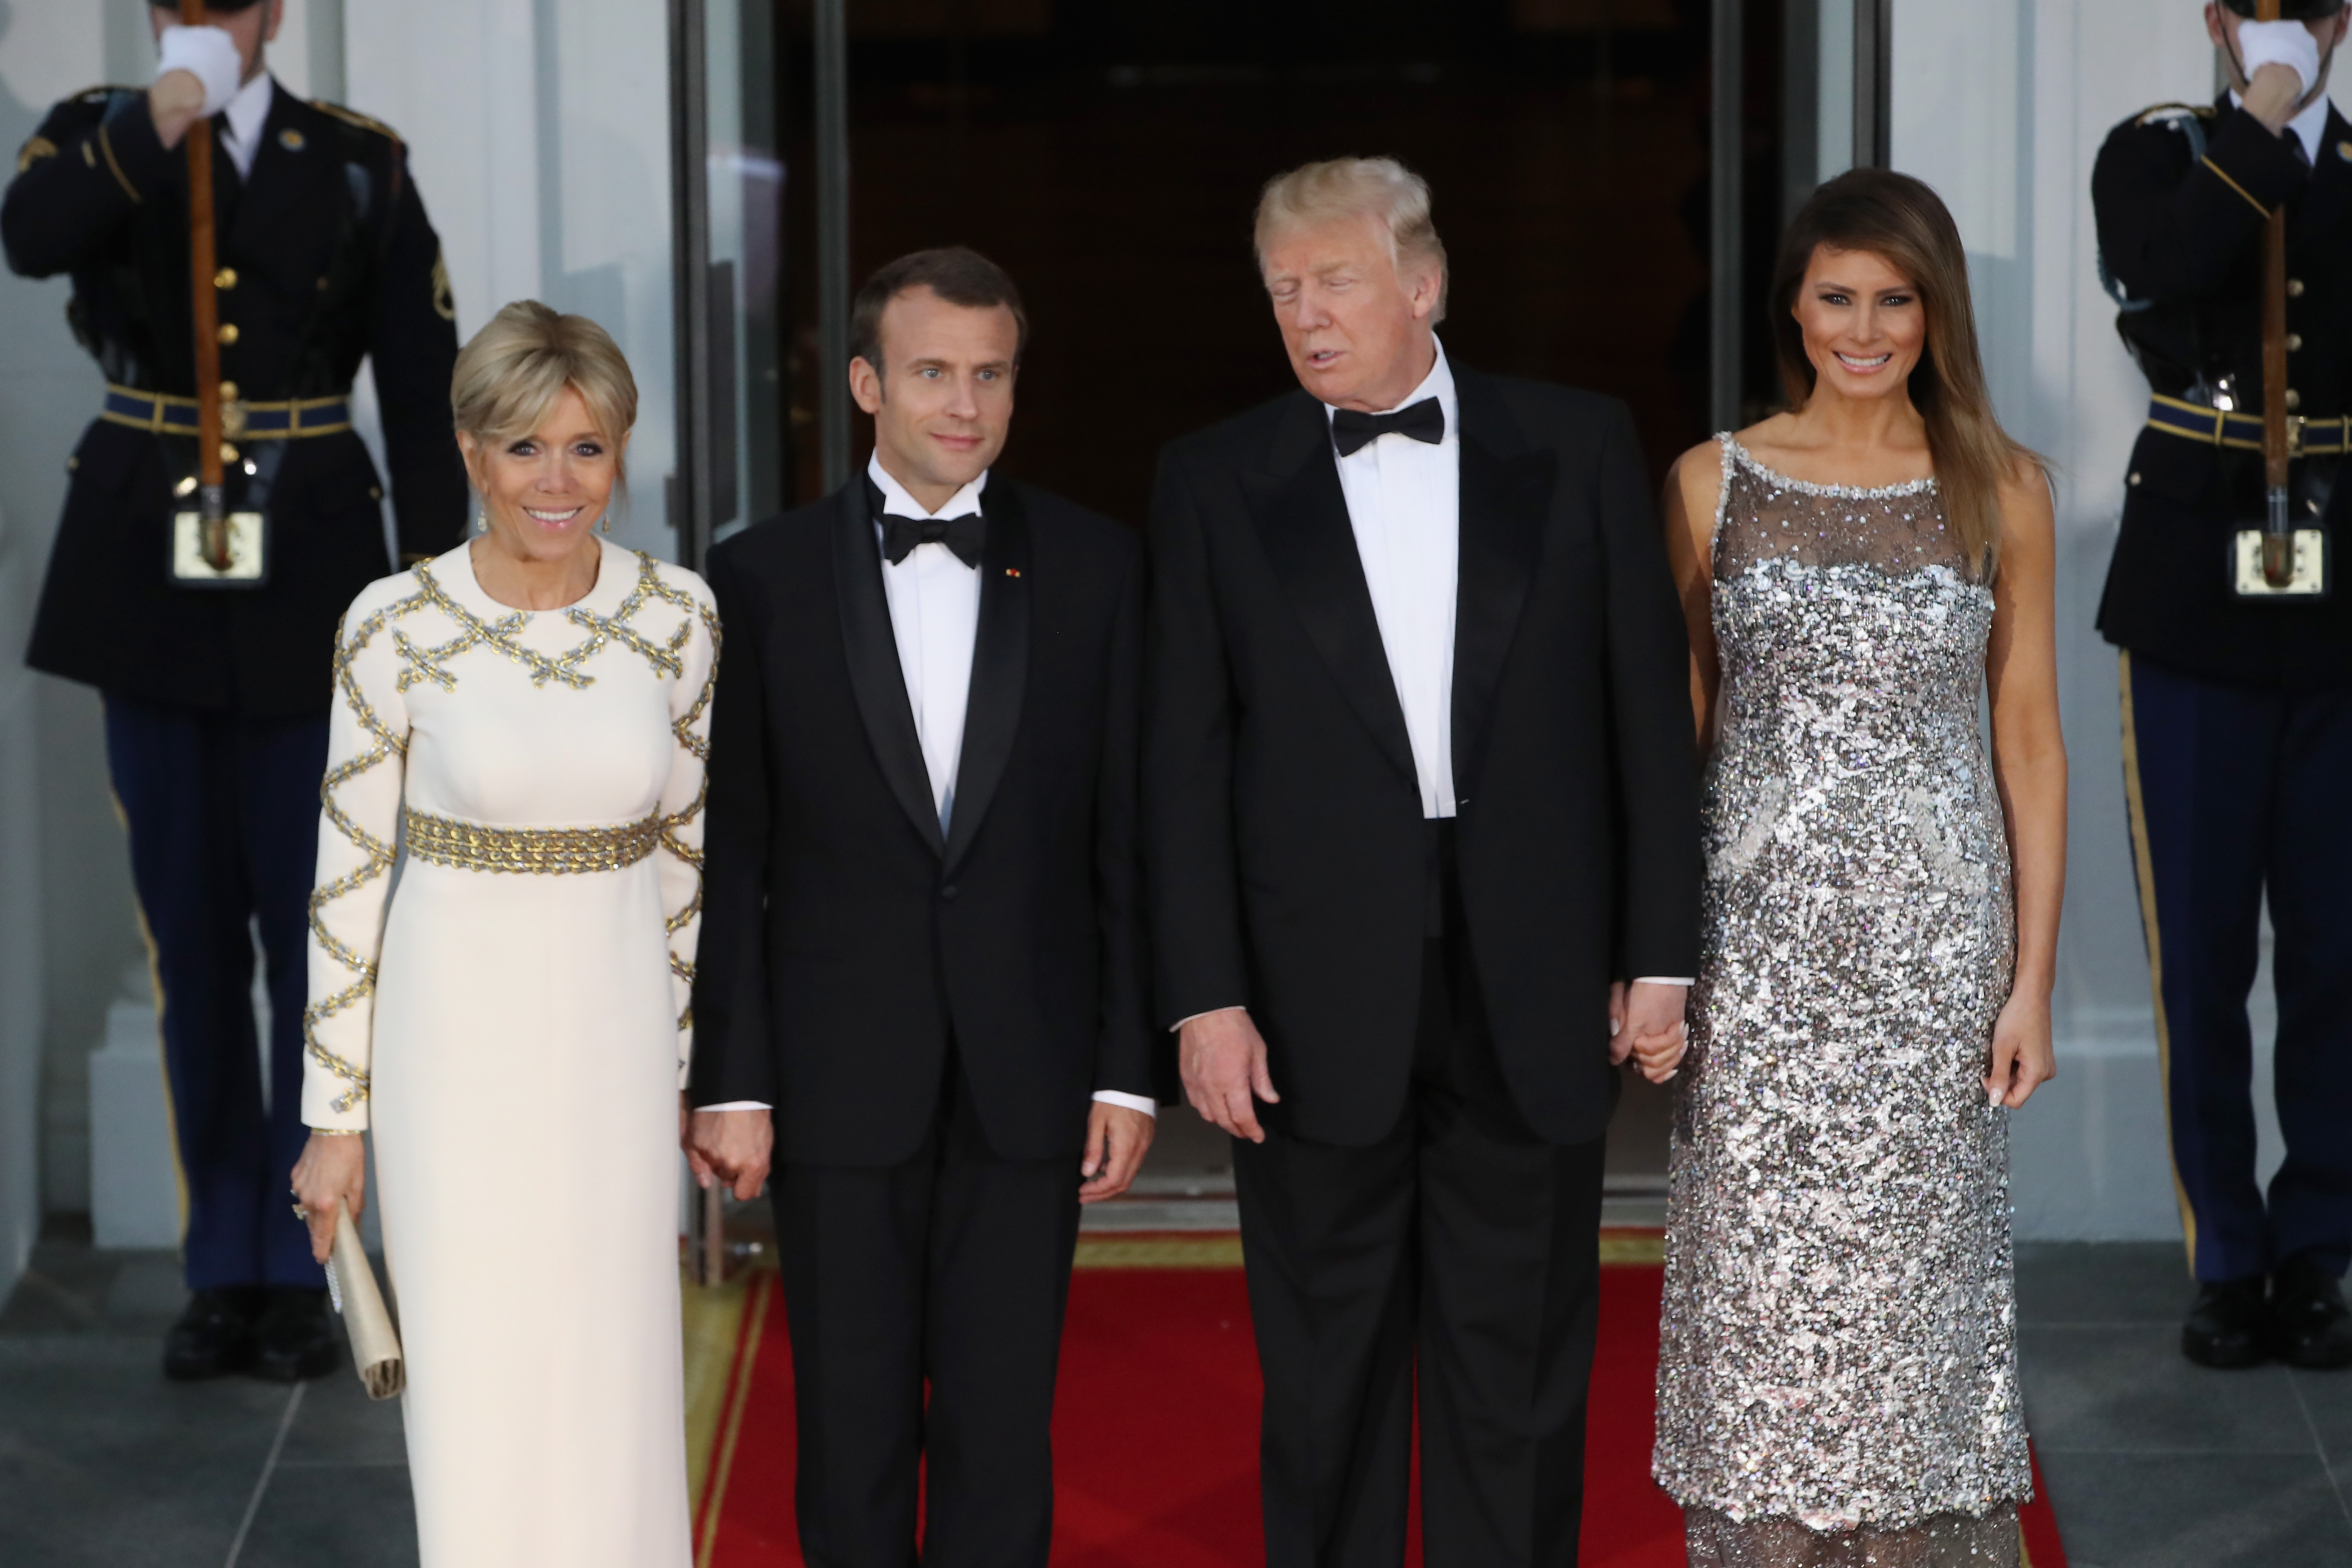 WASHINGTON, DC - APRIL 24: U.S President Donald Trump and U.S. first lady Melania Trump stand with French President Emmanuel Macron and French first lady Brigitte Macron after their arrival at the North Portico before a State Dinner at the White House, April 24, 2018 in Washington, DC. Trump is hosting Macron for a two-day official visit that included dinner at George Washington's Mount Vernon, a tree planting on the White House South Lawn and a joint news conference. (Photo by Mark Wilson/Getty Images)